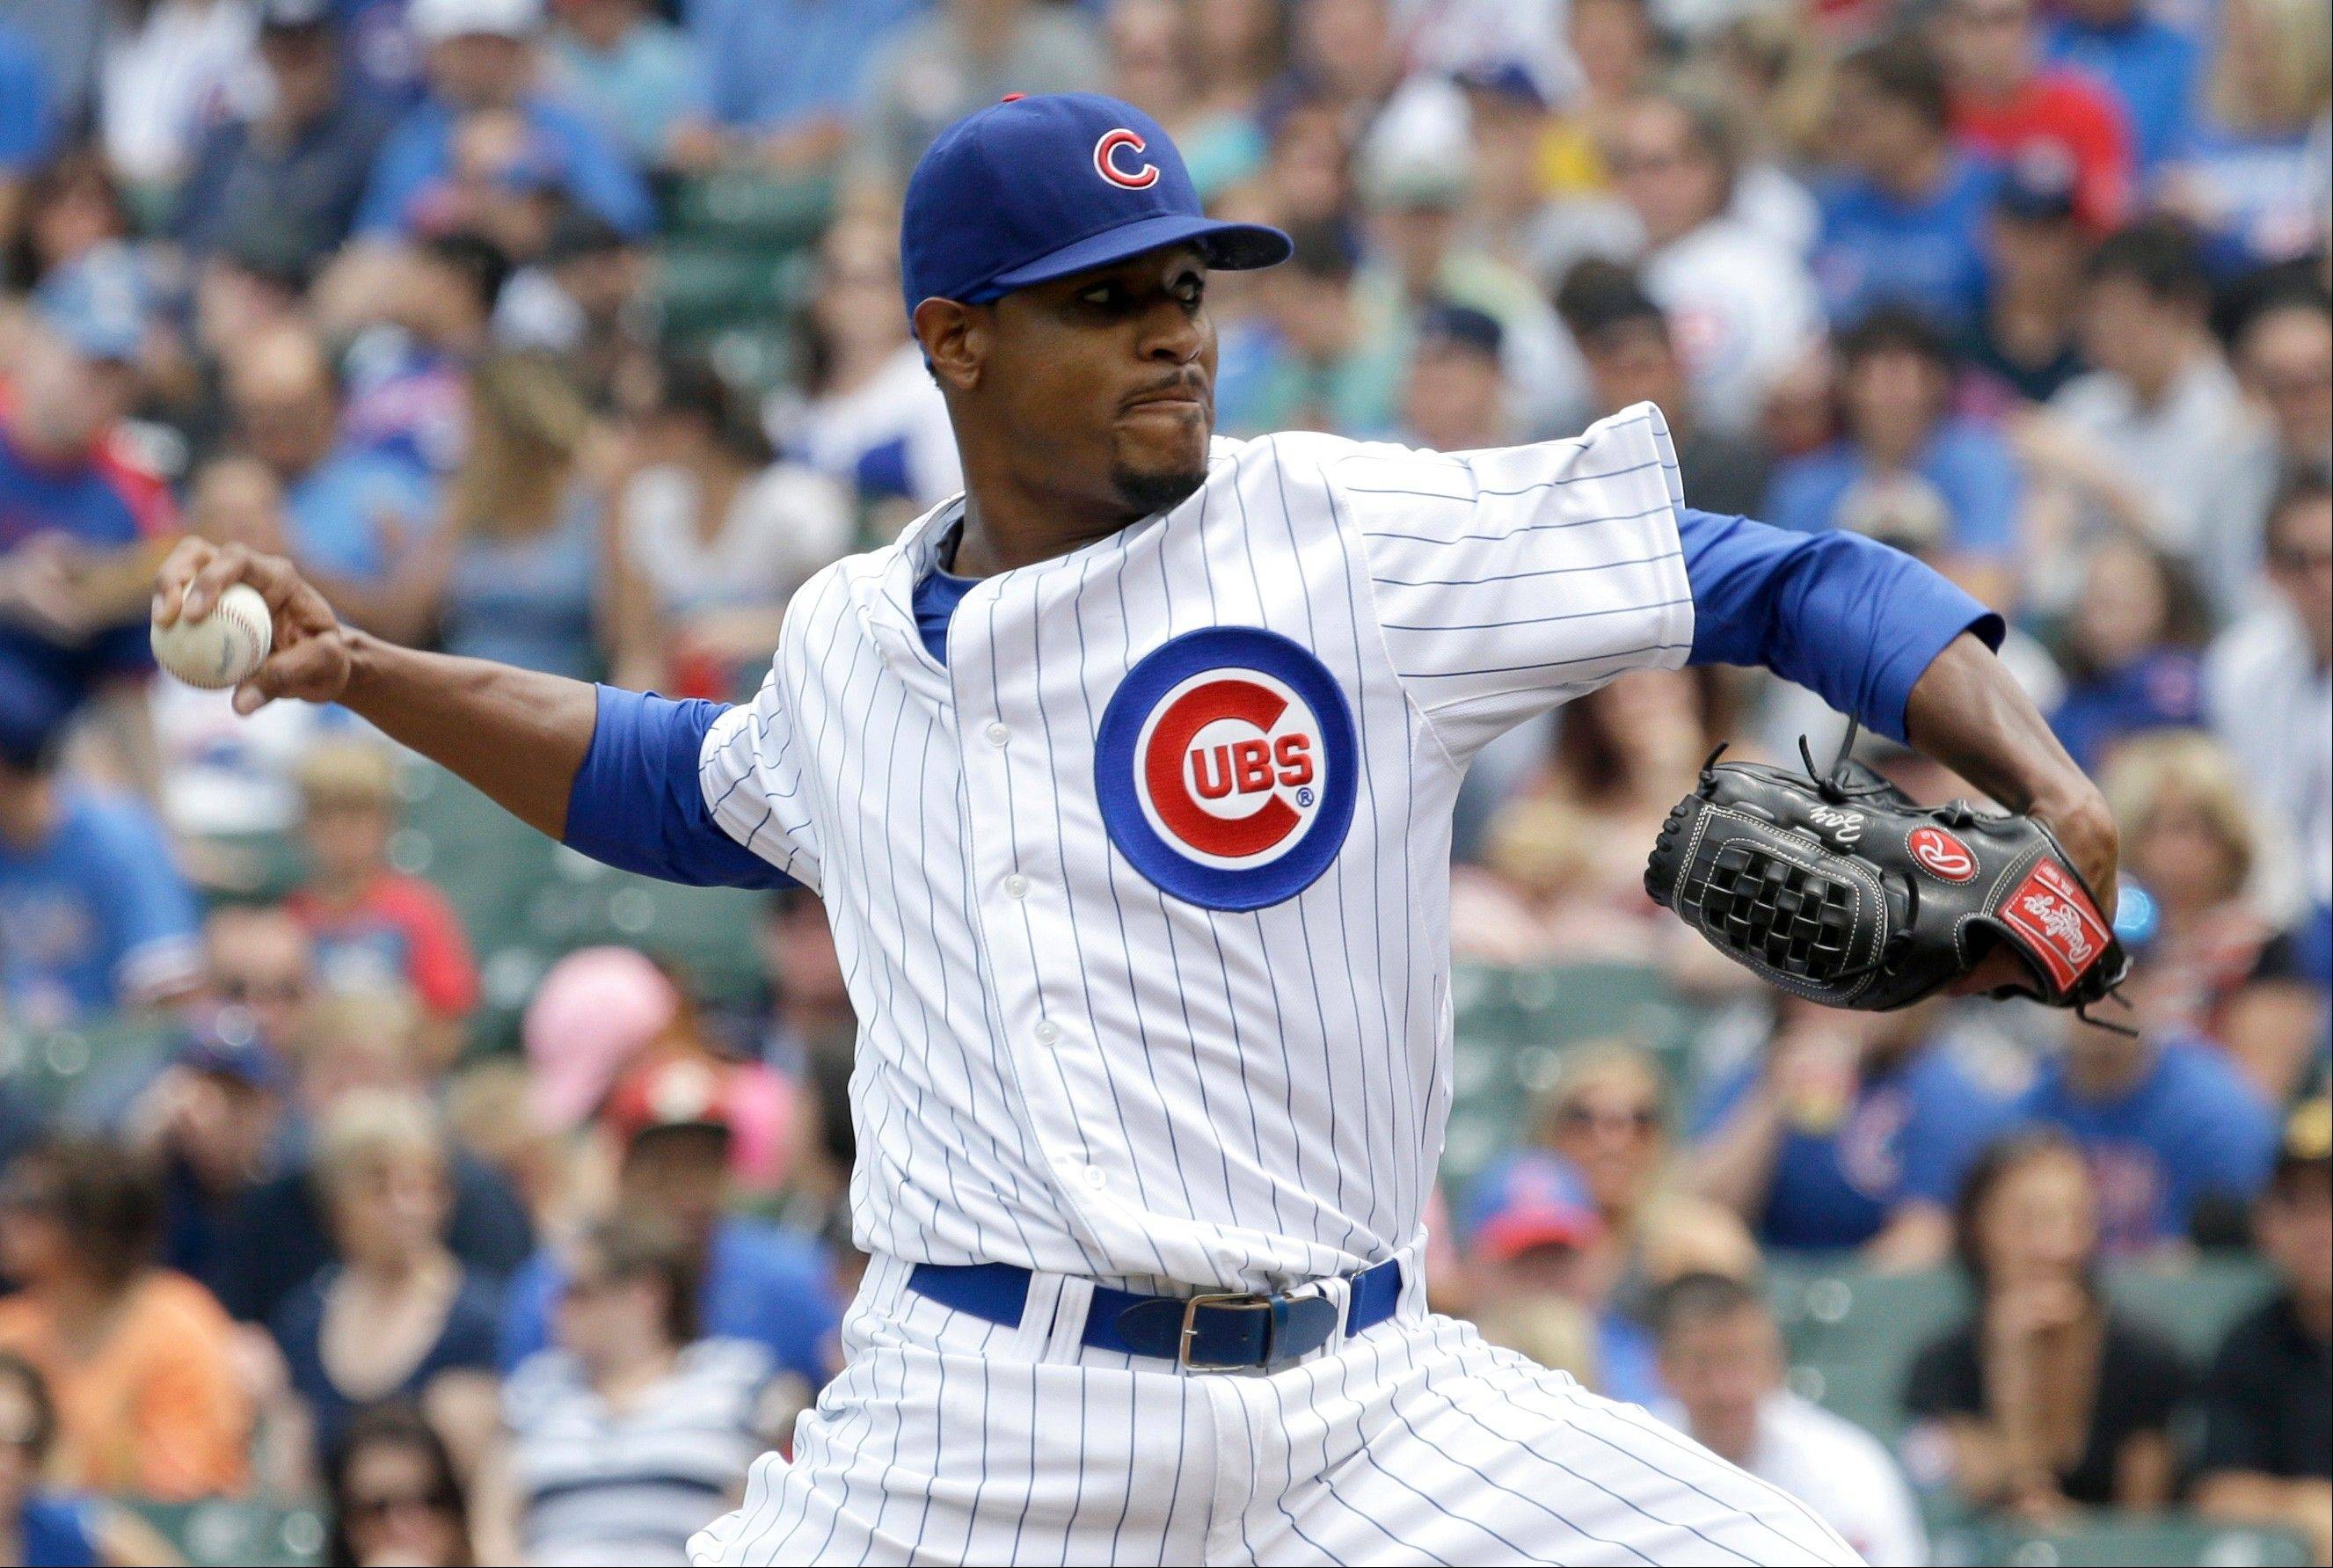 Cubs starter Edwin Jackson won his second decision against 8 losses and lowered his ERA from 6.29 to 5.76 by giving up 4 hits and 1 run against the Pirates at Wrigley Field on Sunday.